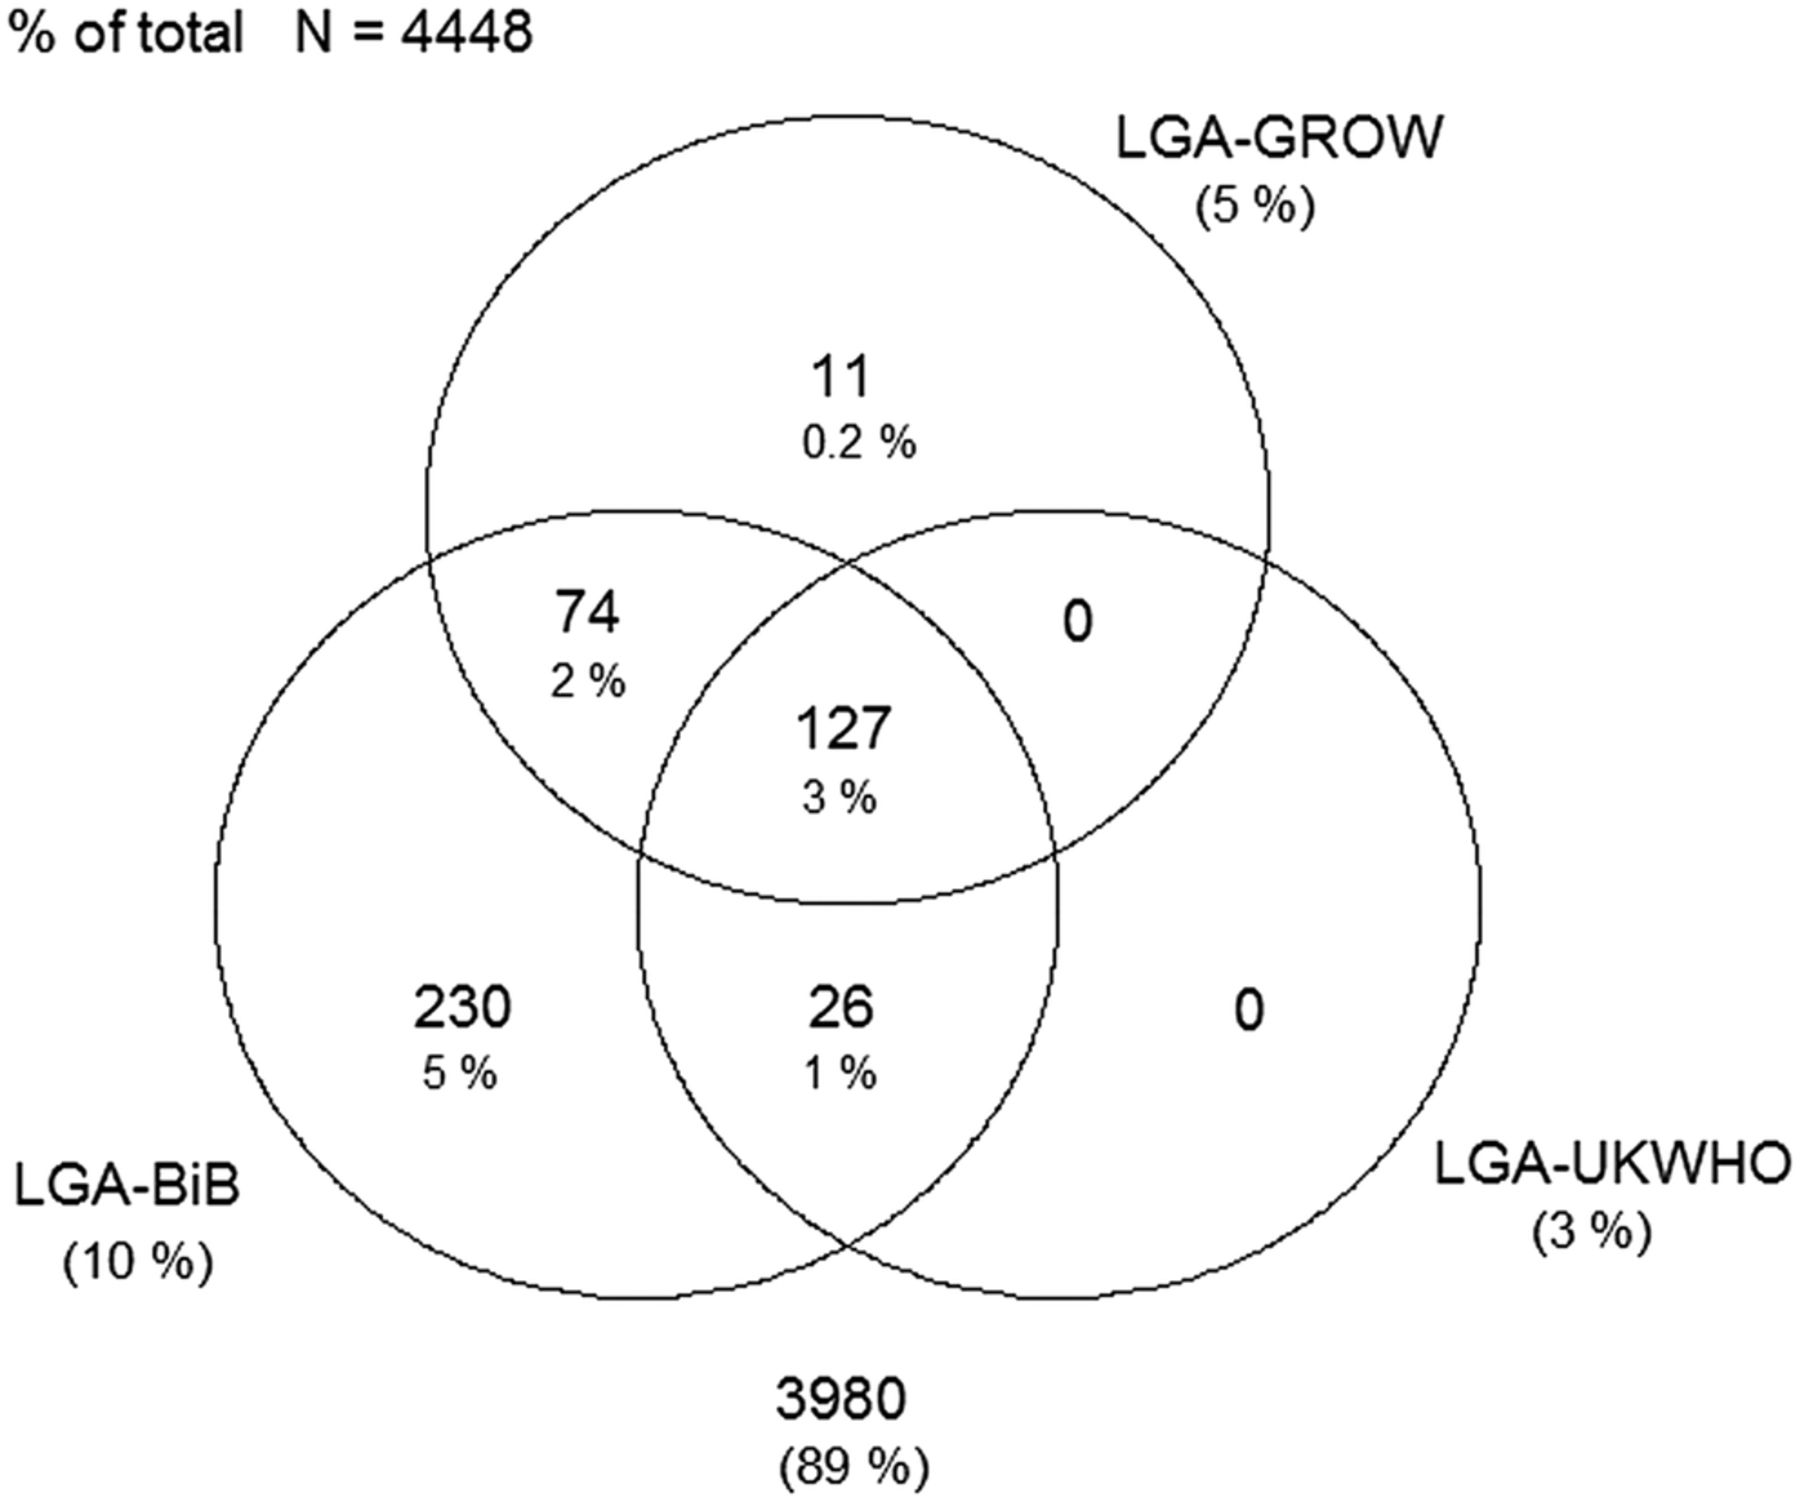 Small-for-gestational age and large-for-gestational age